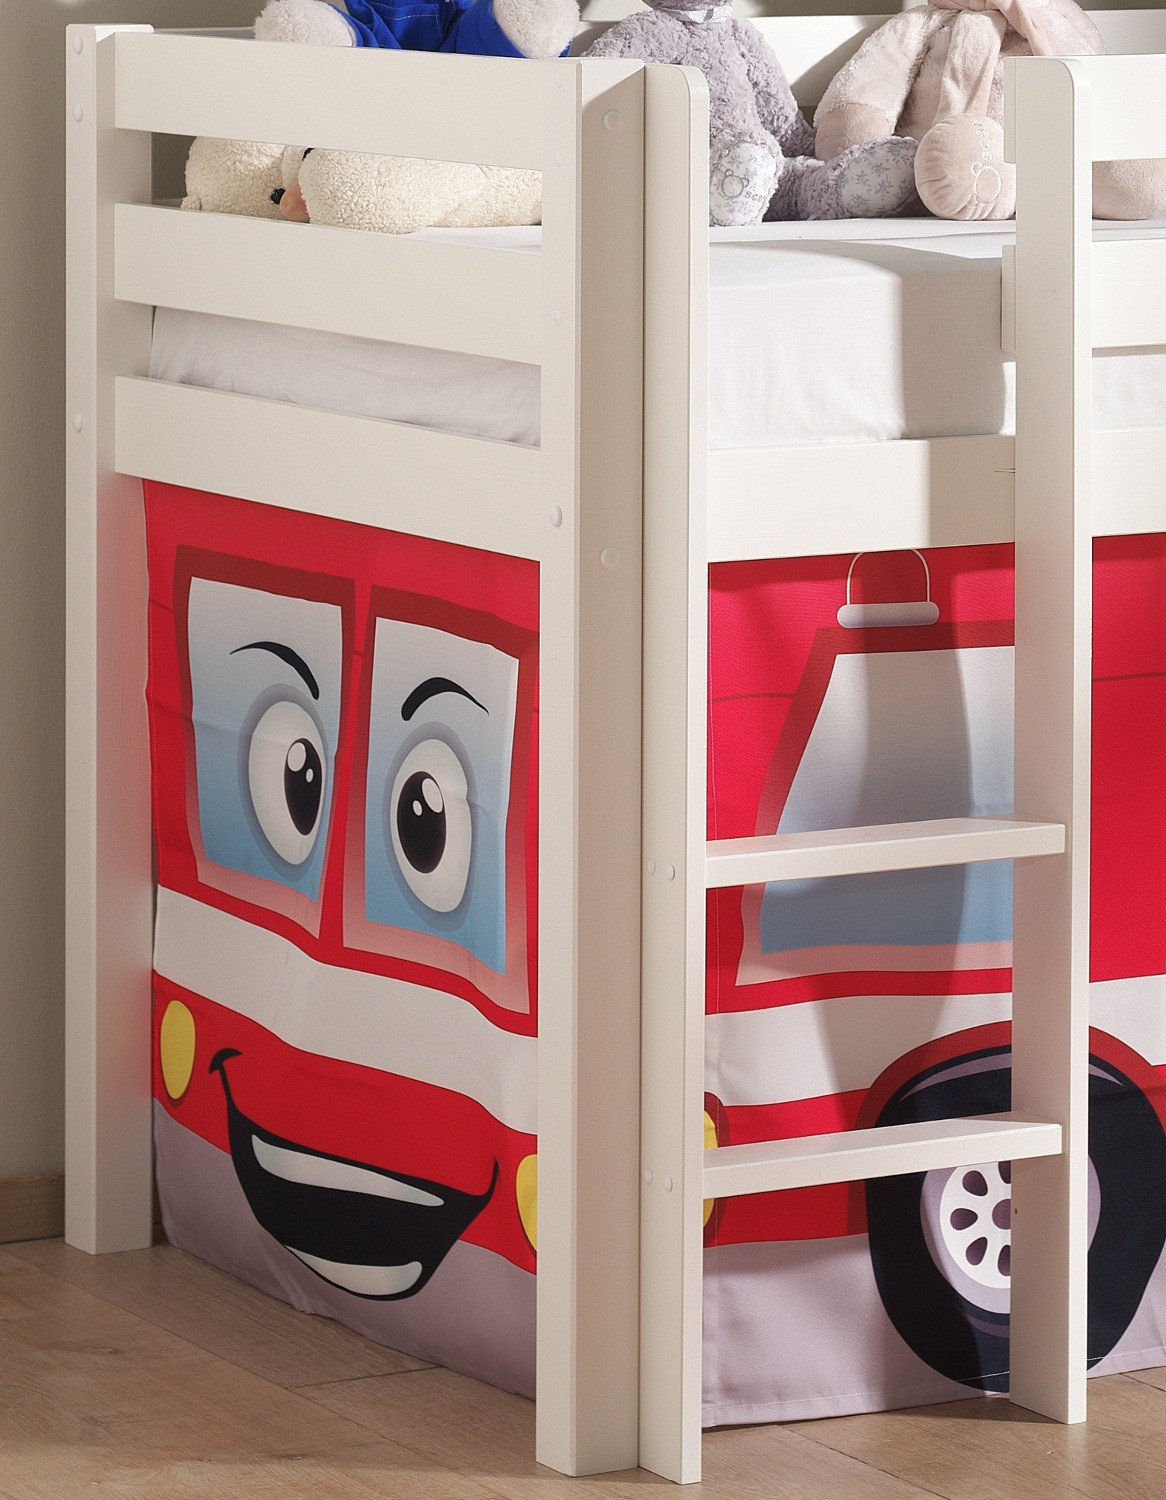 neu spielbett pino feuerwehr kinderbett hochbett 90 x 200. Black Bedroom Furniture Sets. Home Design Ideas